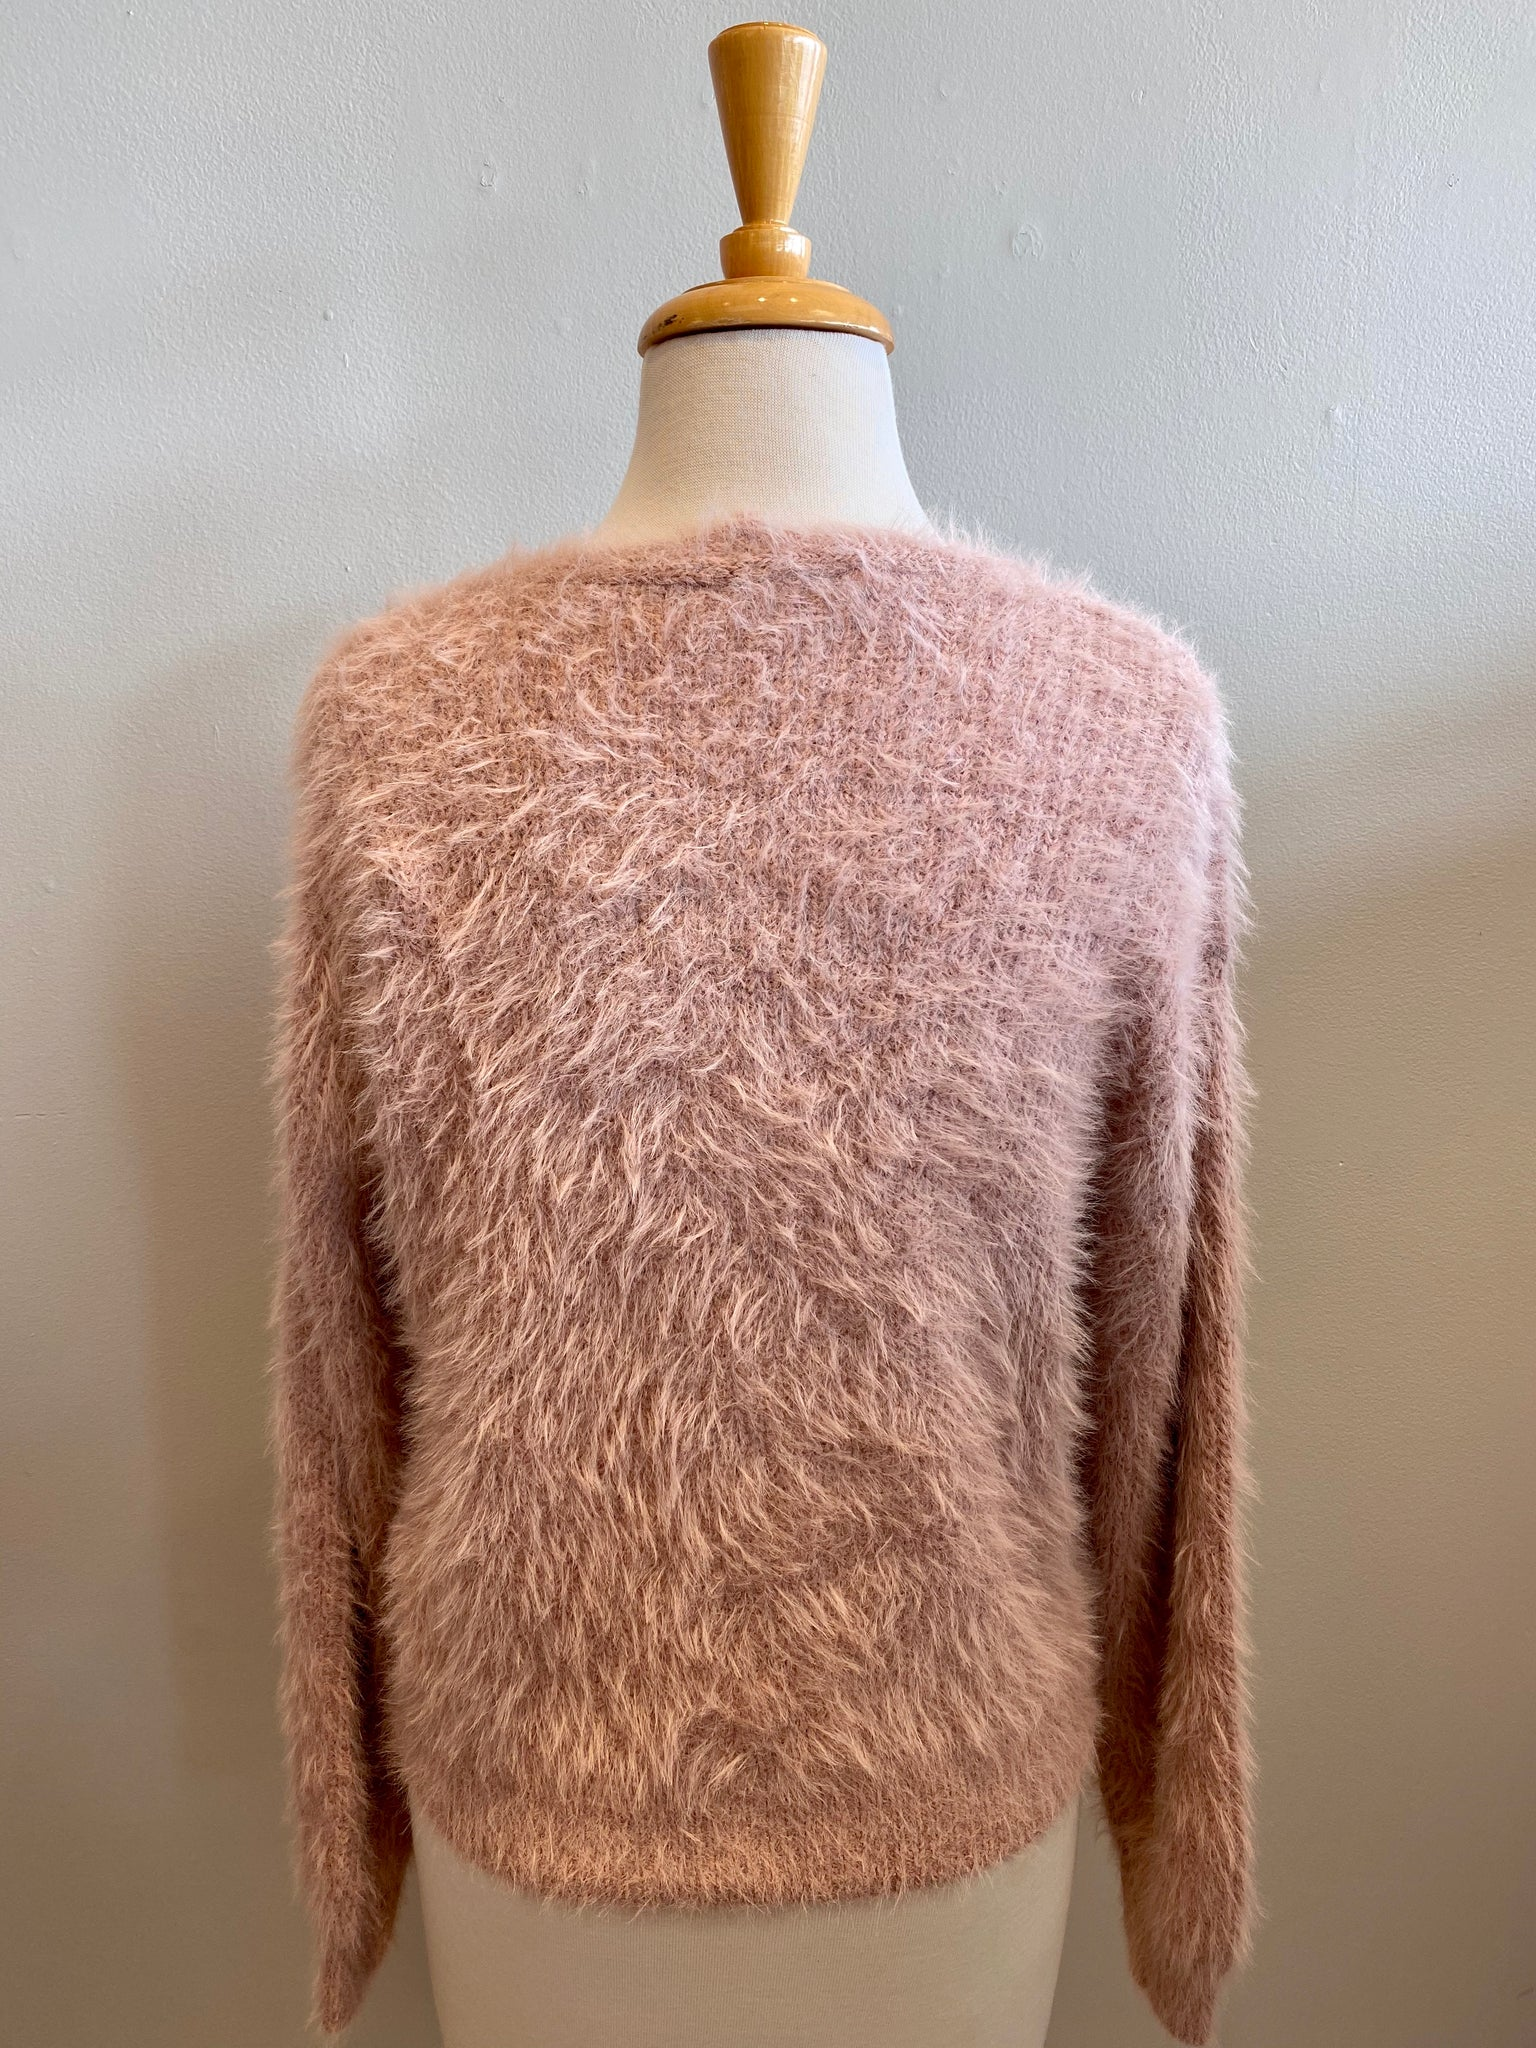 Elan Fuzzy & Sweet Cardi - Showroom56